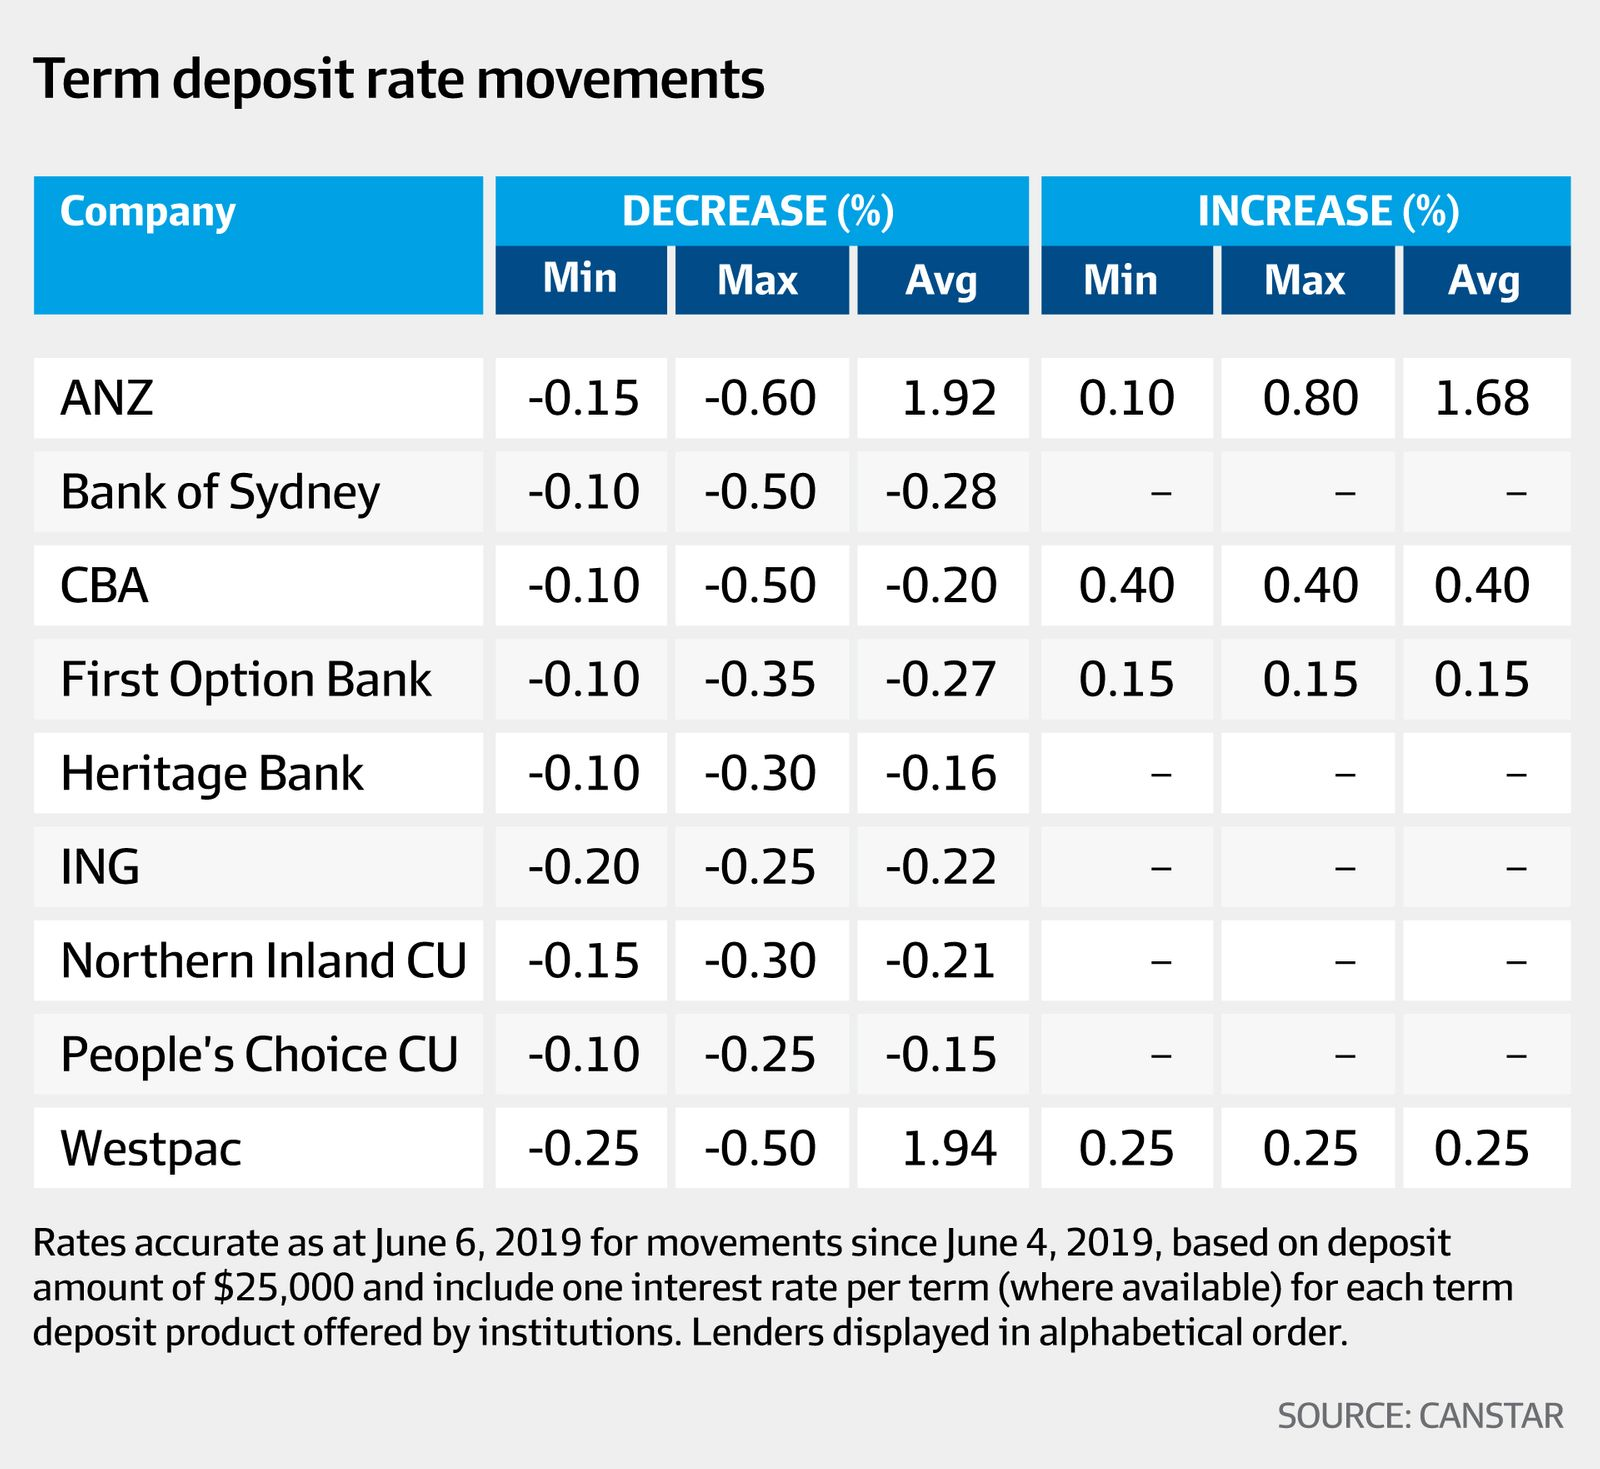 Term deposit rate movements (Canstar, AFR)